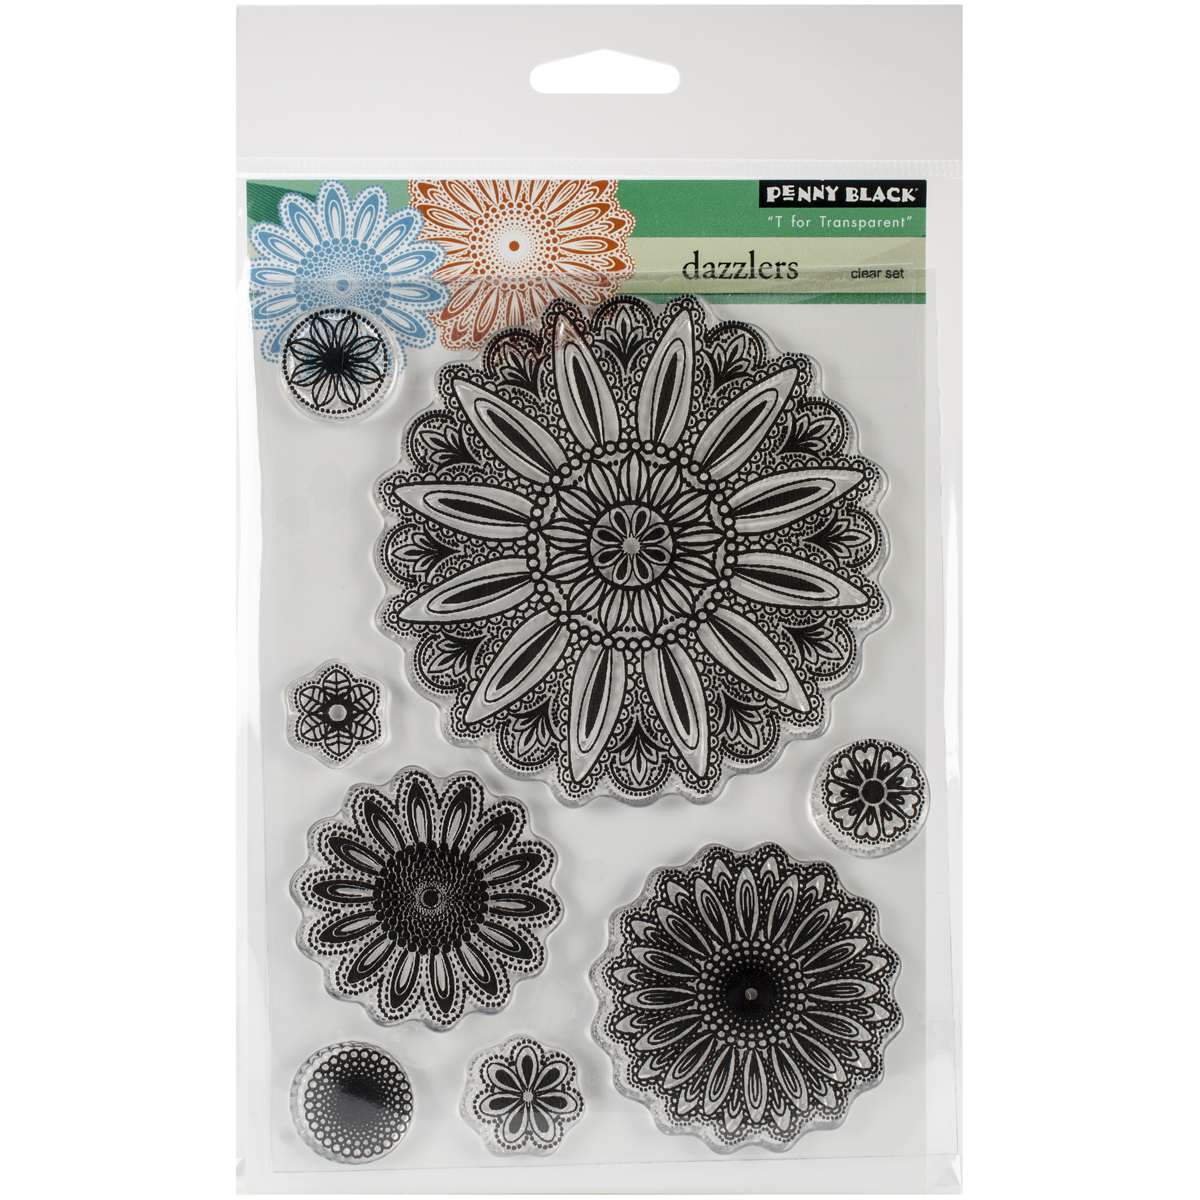 Penny Black Clear Stamps 5 Inch X 6.5 Inch Sheet-Dazzlers